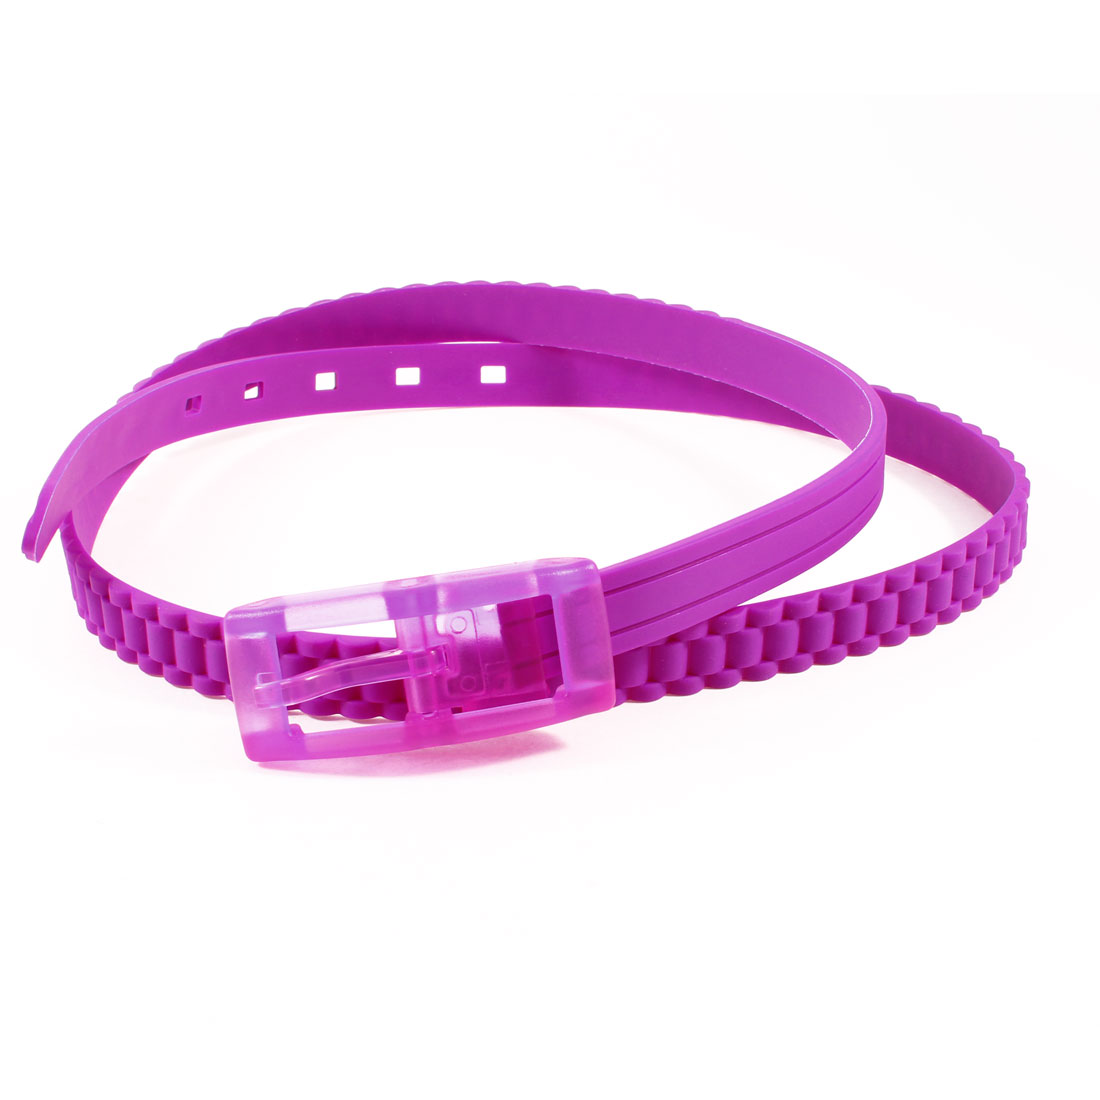 Ladies Single Prong Buckle Textured Band Soft Plastic Skinny Waist Belt Amaranth